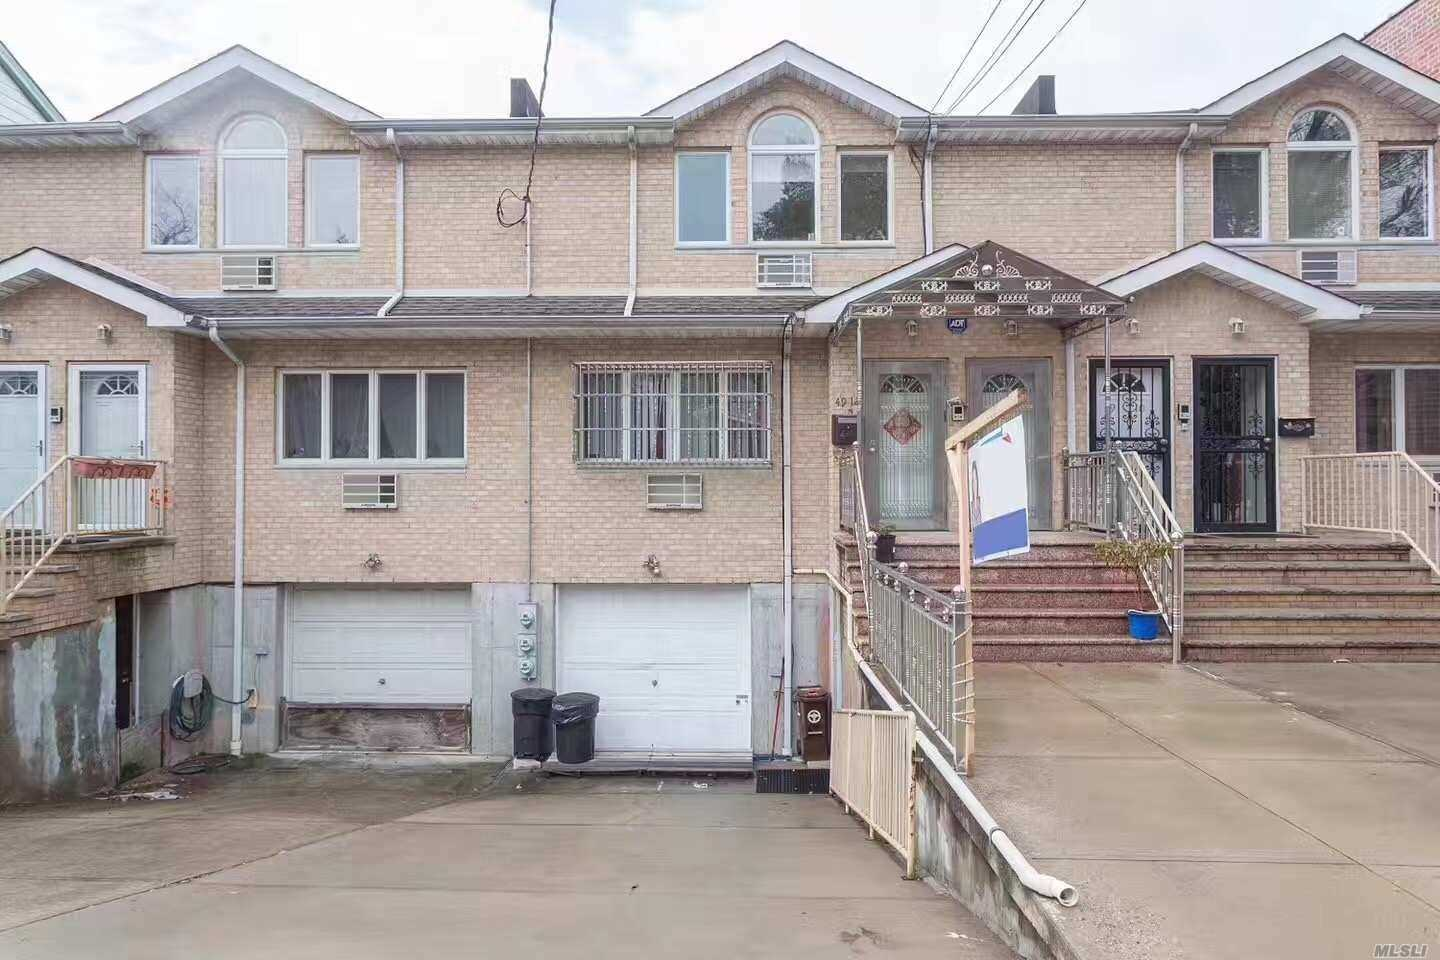 2nd Floor, 3 Bedroom / 2 Bath Apt In A Great Woodside Location Close To The Q18 Bus And Zoned For Ps 229 And Is 5. Features H/W Floors And Great Natural Light. Separate Thermostat And Private Entrance.